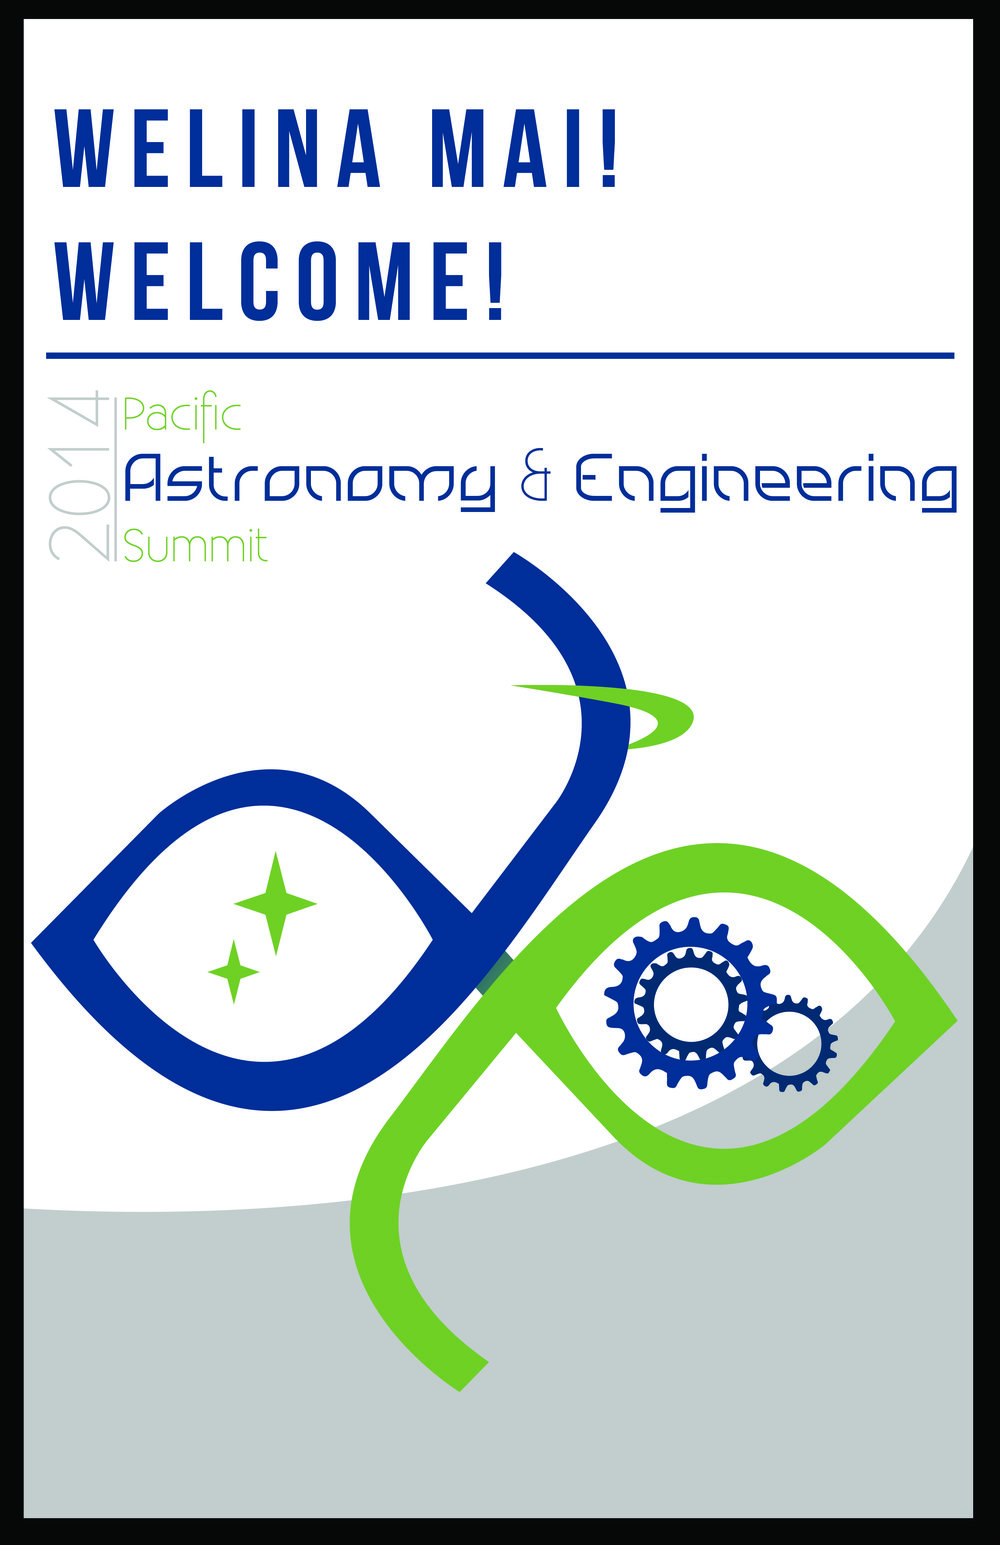 Pacific Astronomy & Engineering Summit 2014 Welcome Poster